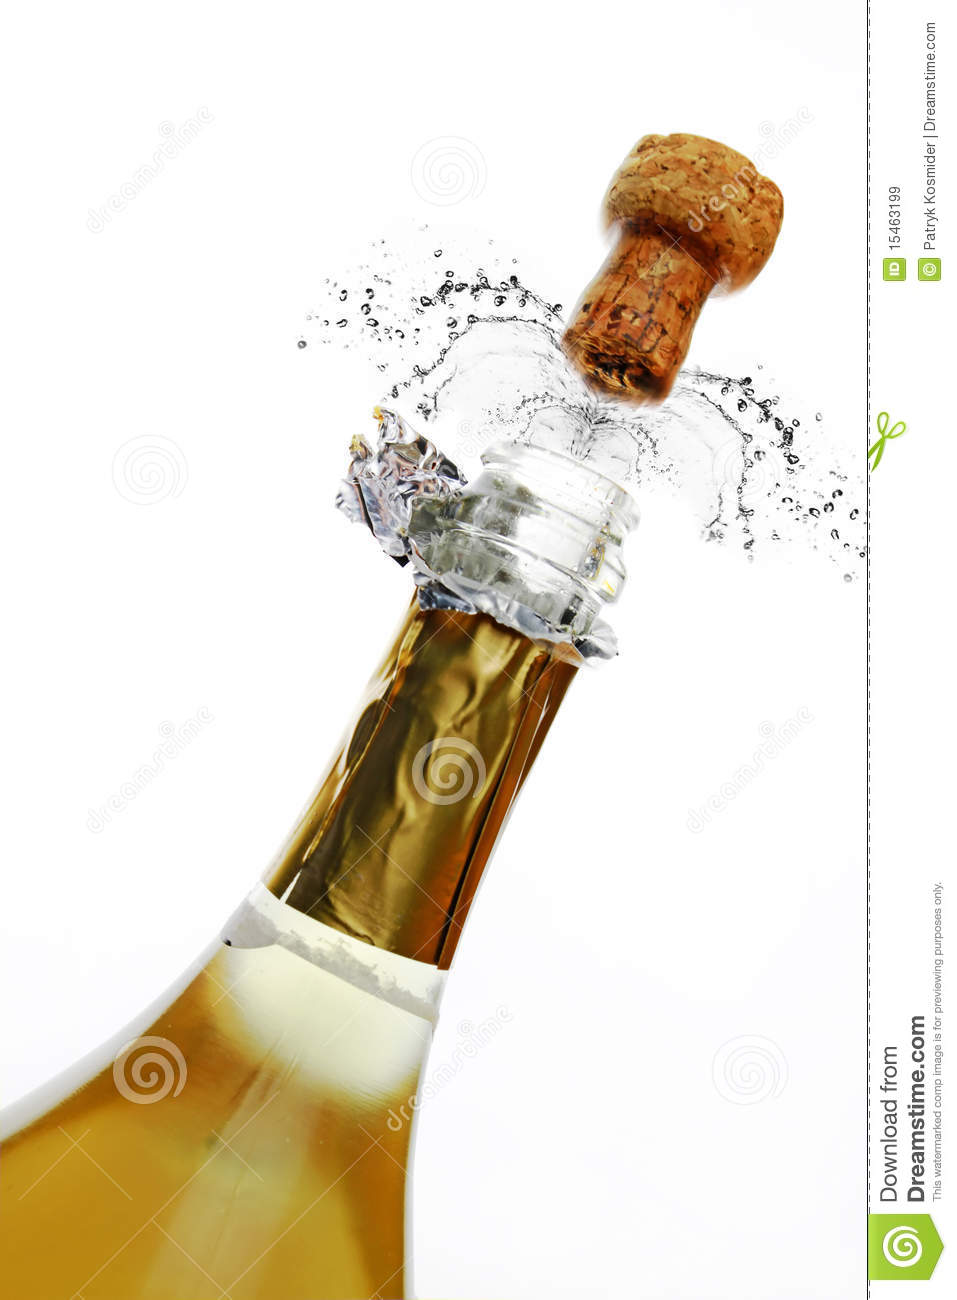 Bottle Of Champagne Royalty Free Stock Images - Image: 15463199